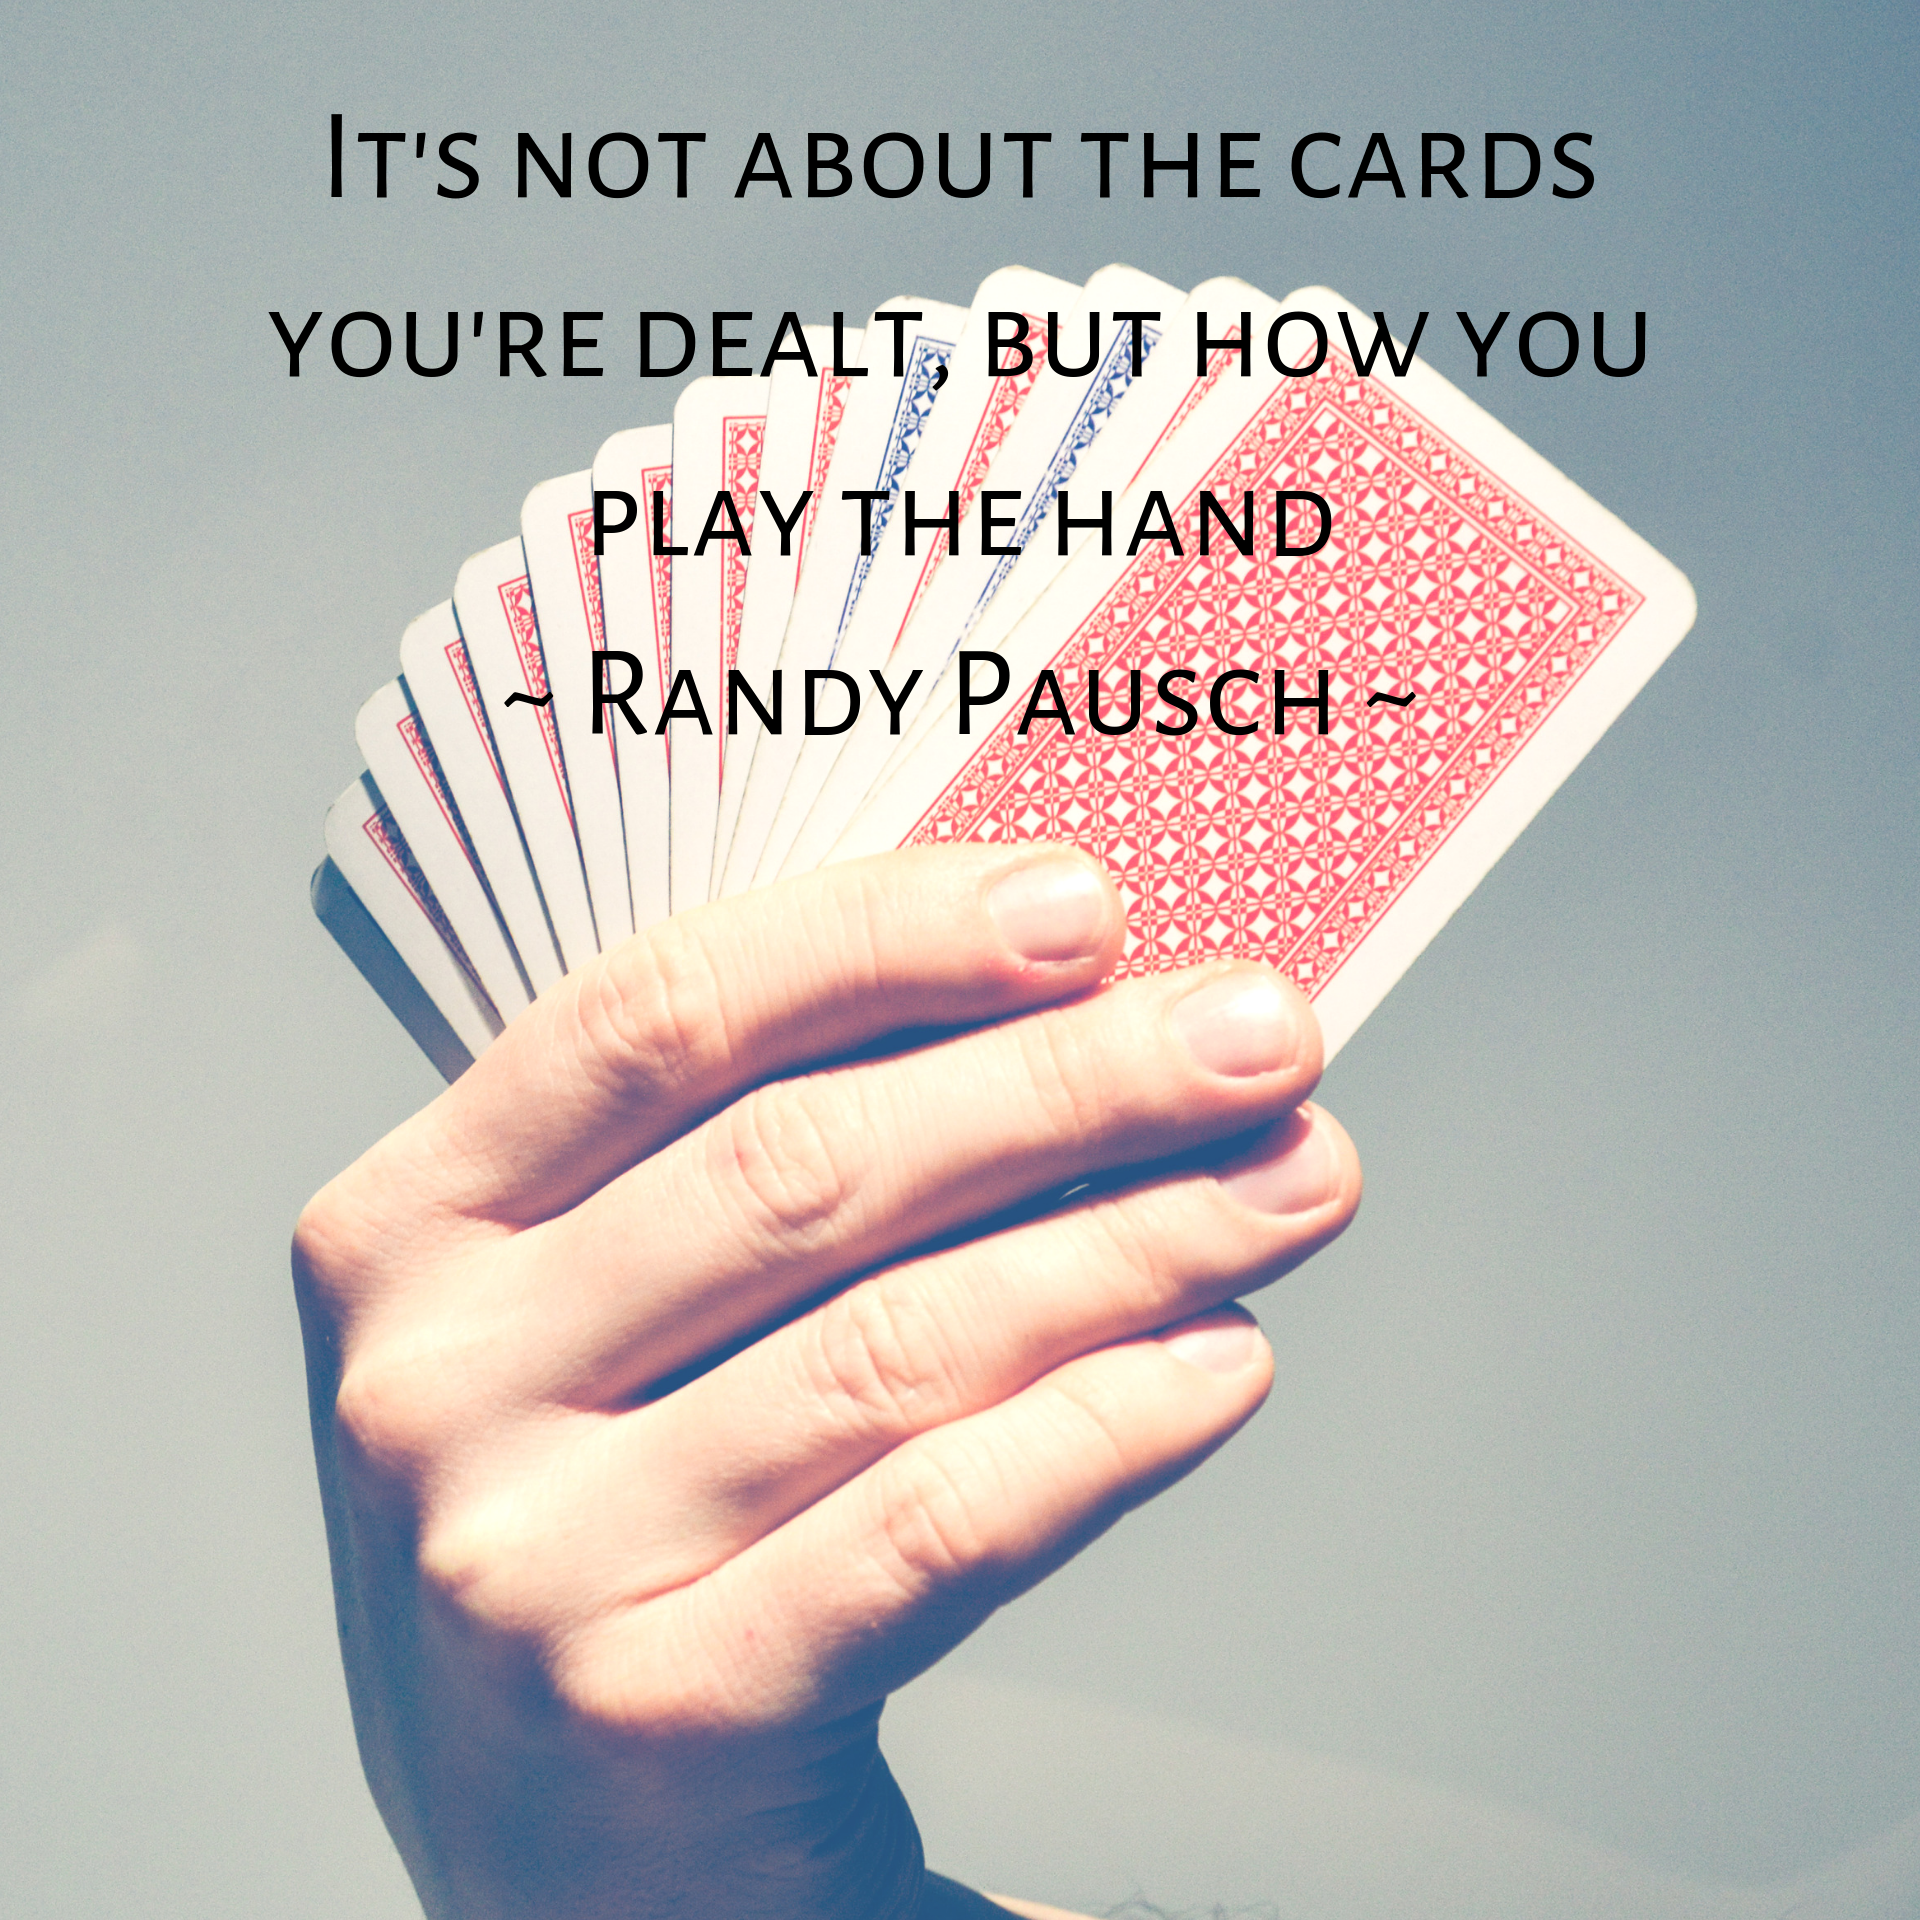 It's not about the cards you're dealt, but how you play the hand - Randy Pausch